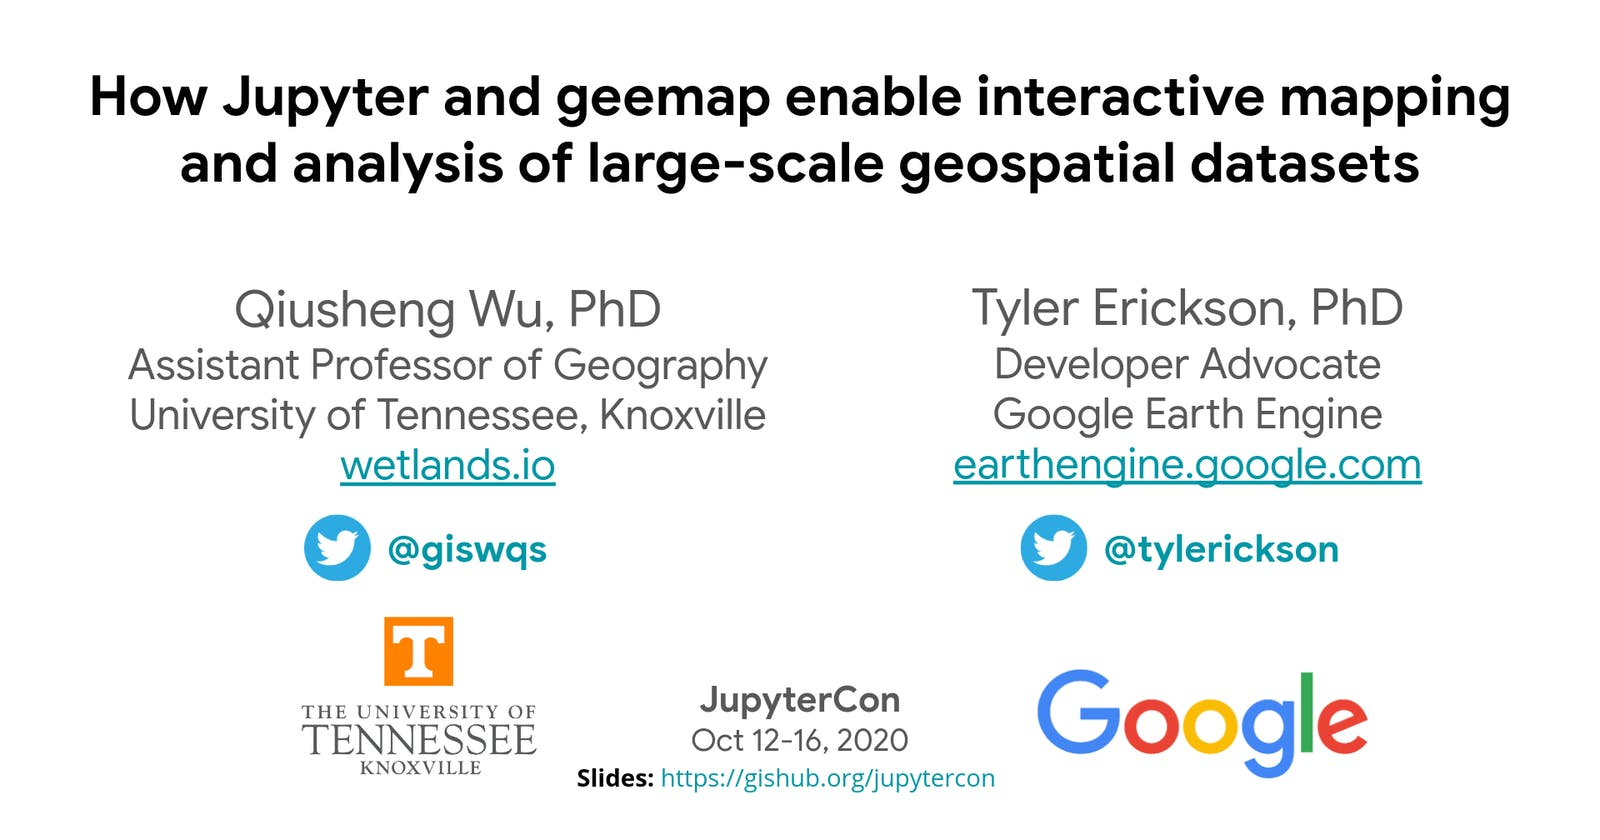 JupyterCon 2020 - How Jupyter and geemap enable interactive mapping of large-scale geospatial datasets